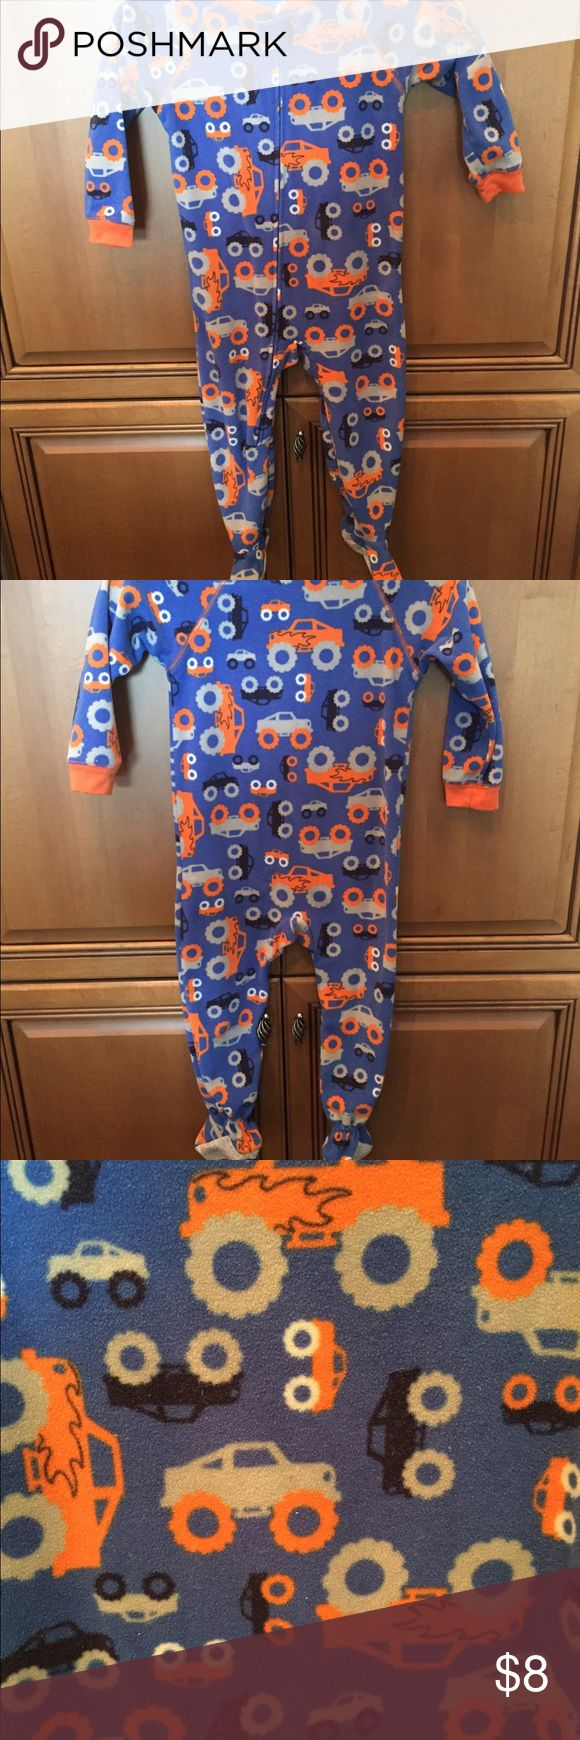 Toddler boys footed pajamas Toddler boys footed pajamas in a size 3T.  The brand is Child of Mine by Carter's.  The pattern is so cute, it's a truck design.  These are pre-owned, but are in good used condition- some nubs, but no holes.  These are great to keep your little one nice and warm and cuddly! Child of Mine by Carter's Intimates & Sleepwear Pajamas